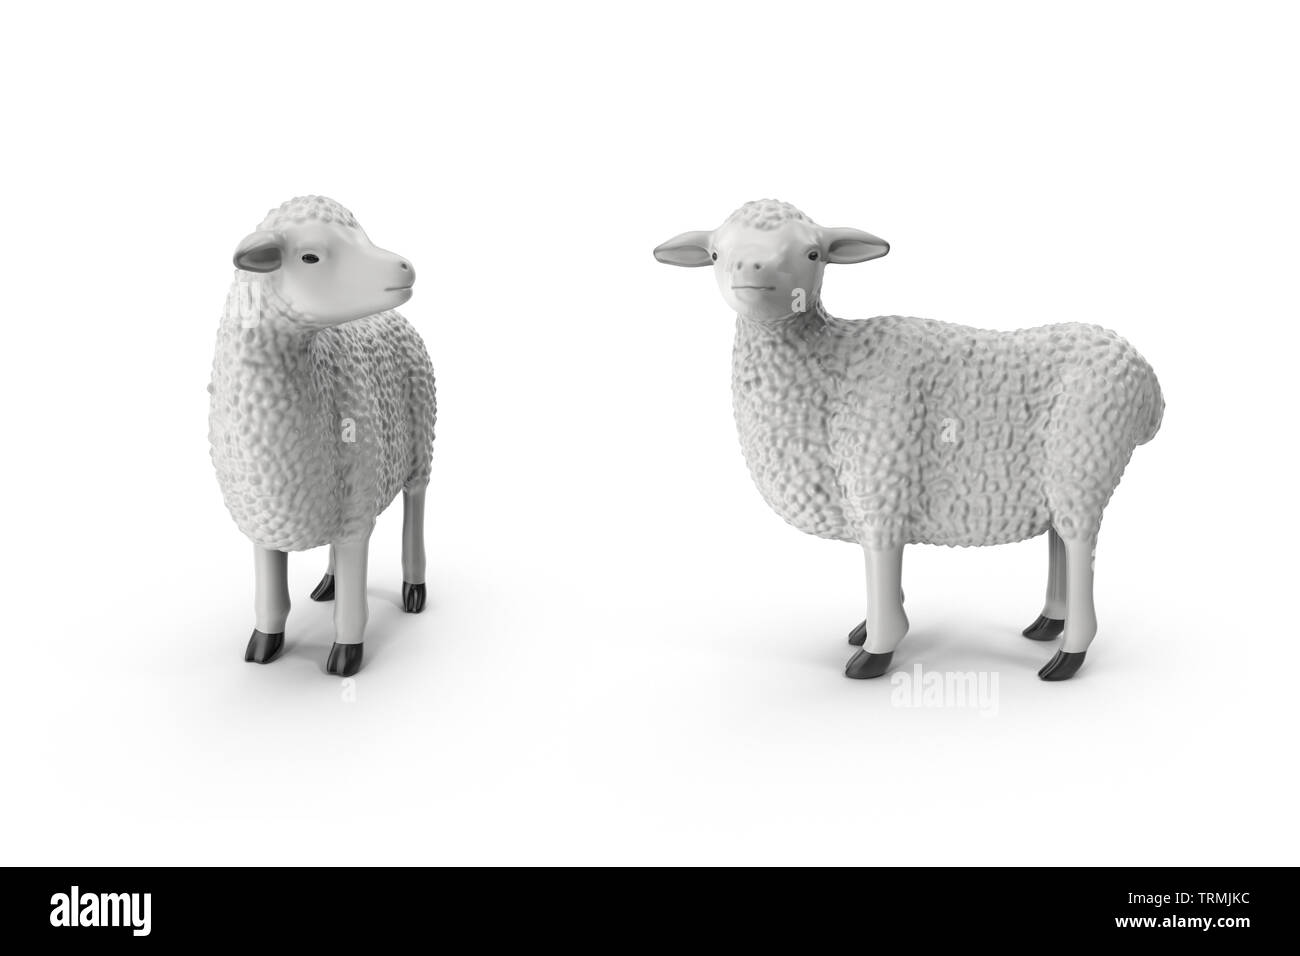 Design creative concept of islamic celebration eid al adha or happy birthday. Copy space text. Sheep isolated on white background 3D illustration - Stock Image